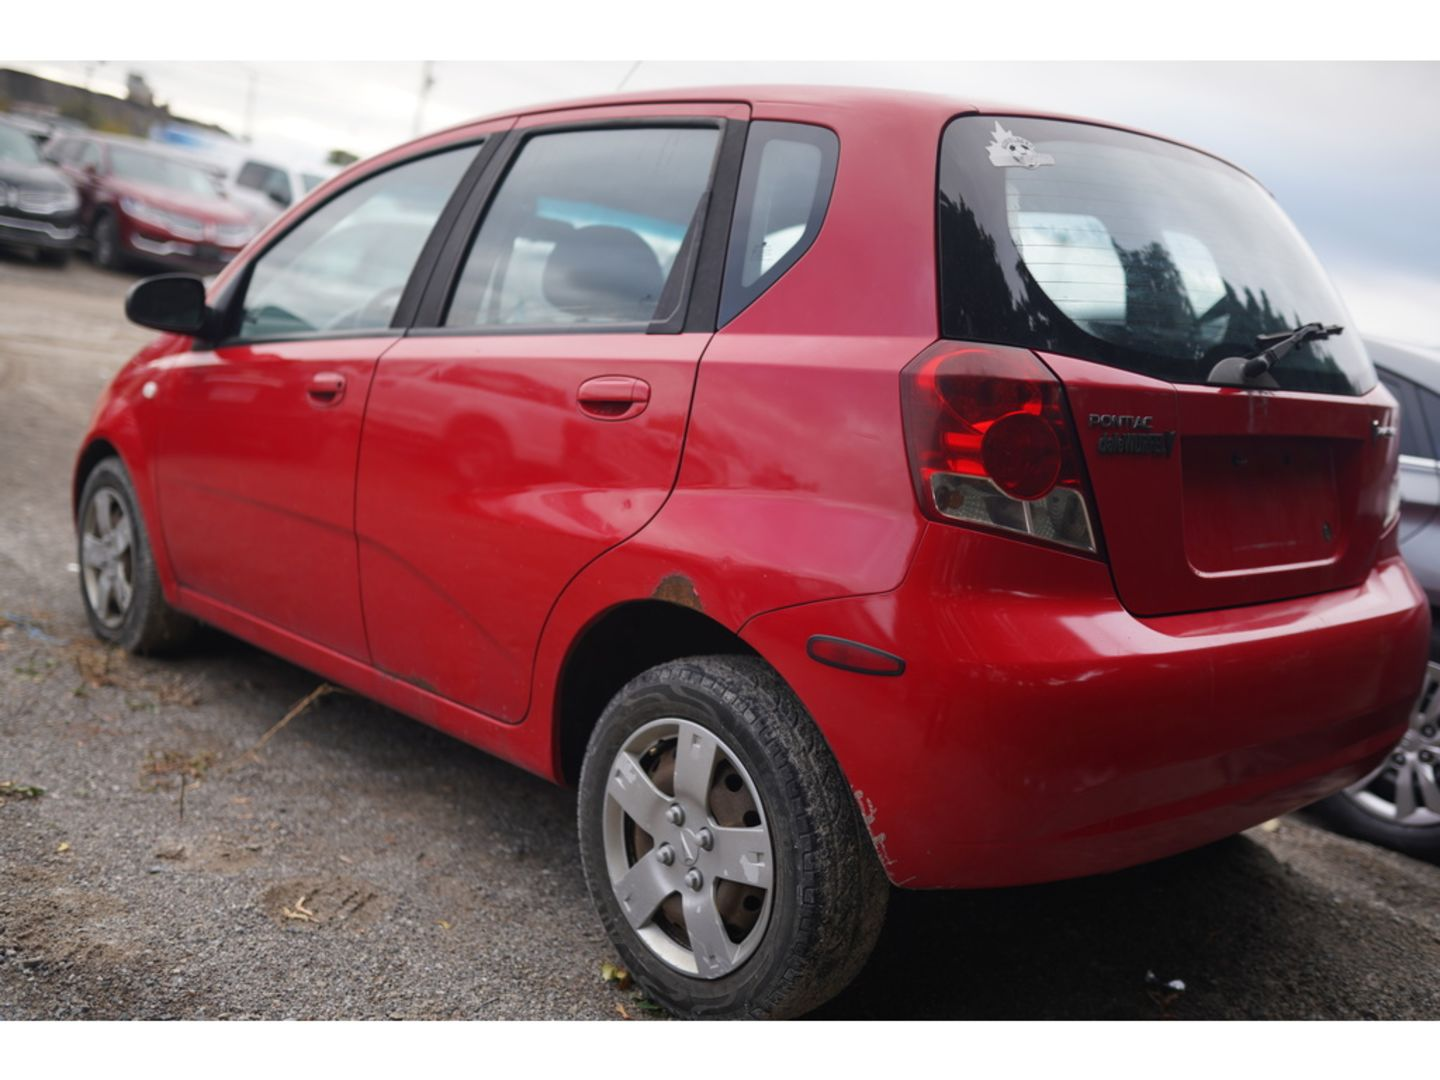 2006 Pontiac Wave Base for sale in Mississauga, Ontario